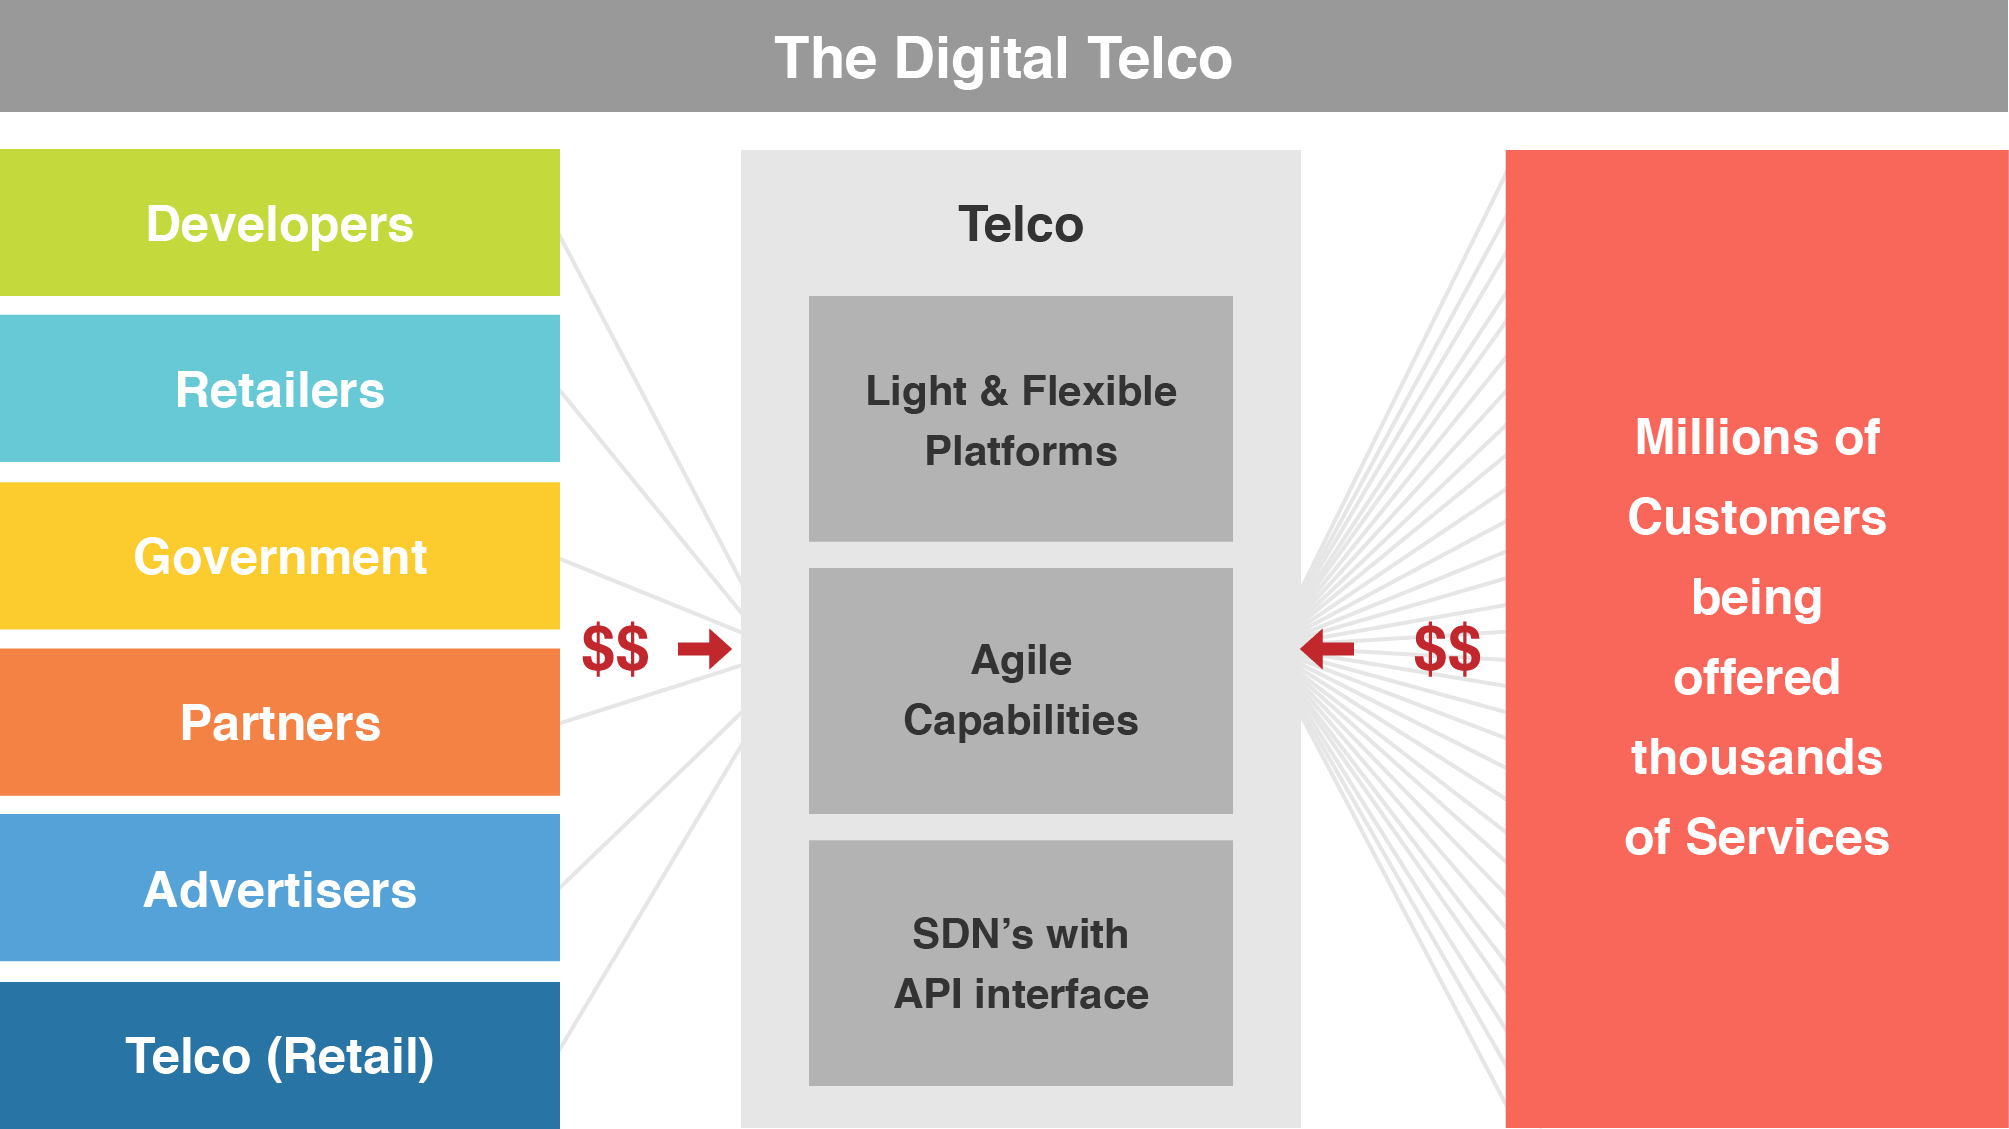 Will digital transformation help telcos to grow?